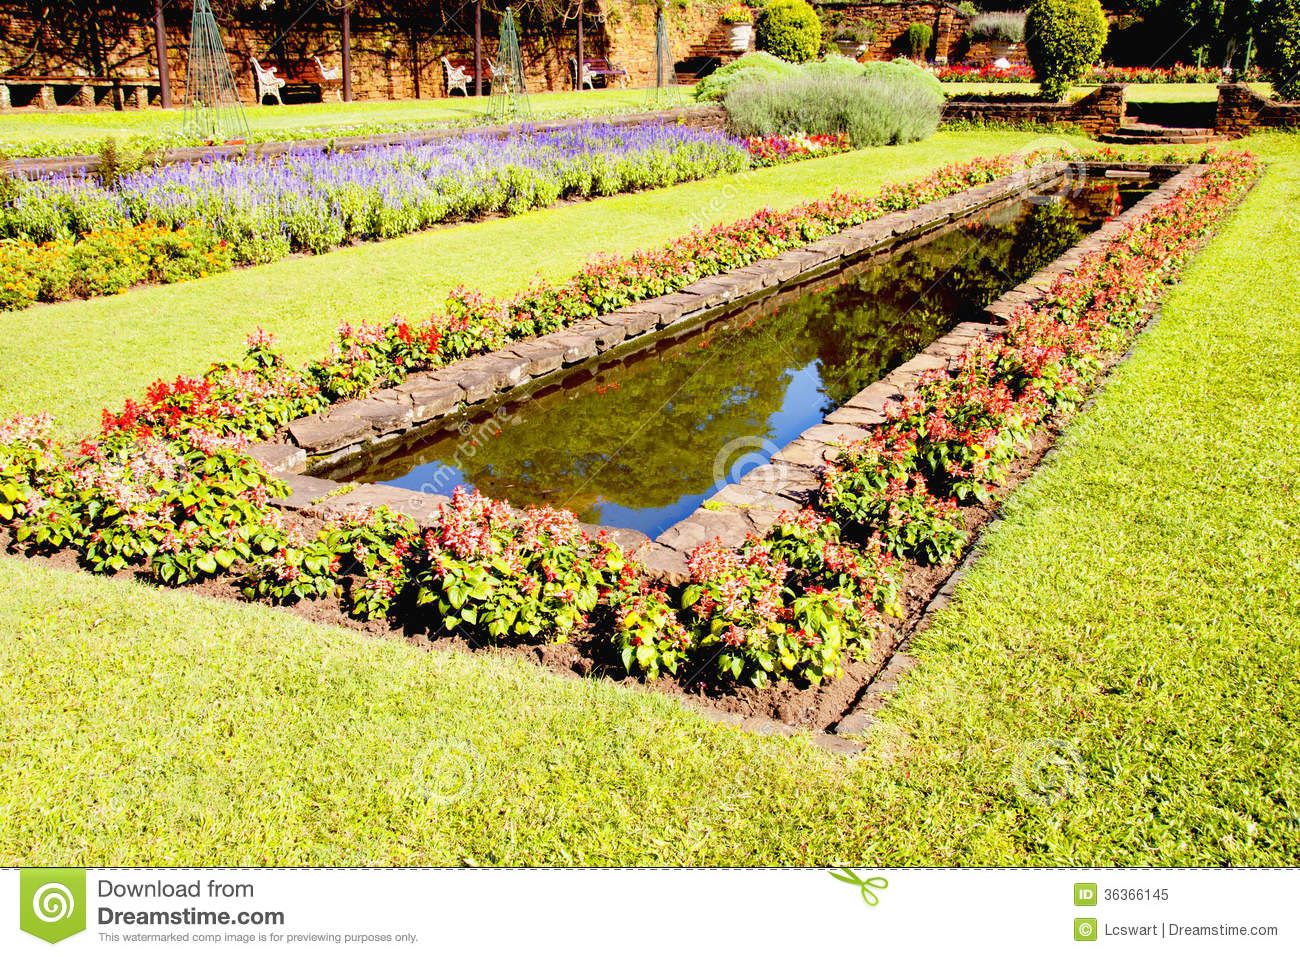 Landscaped Formal Garden With Rectangular Fish Pond Royalty Free Stock Photo Image 36366145